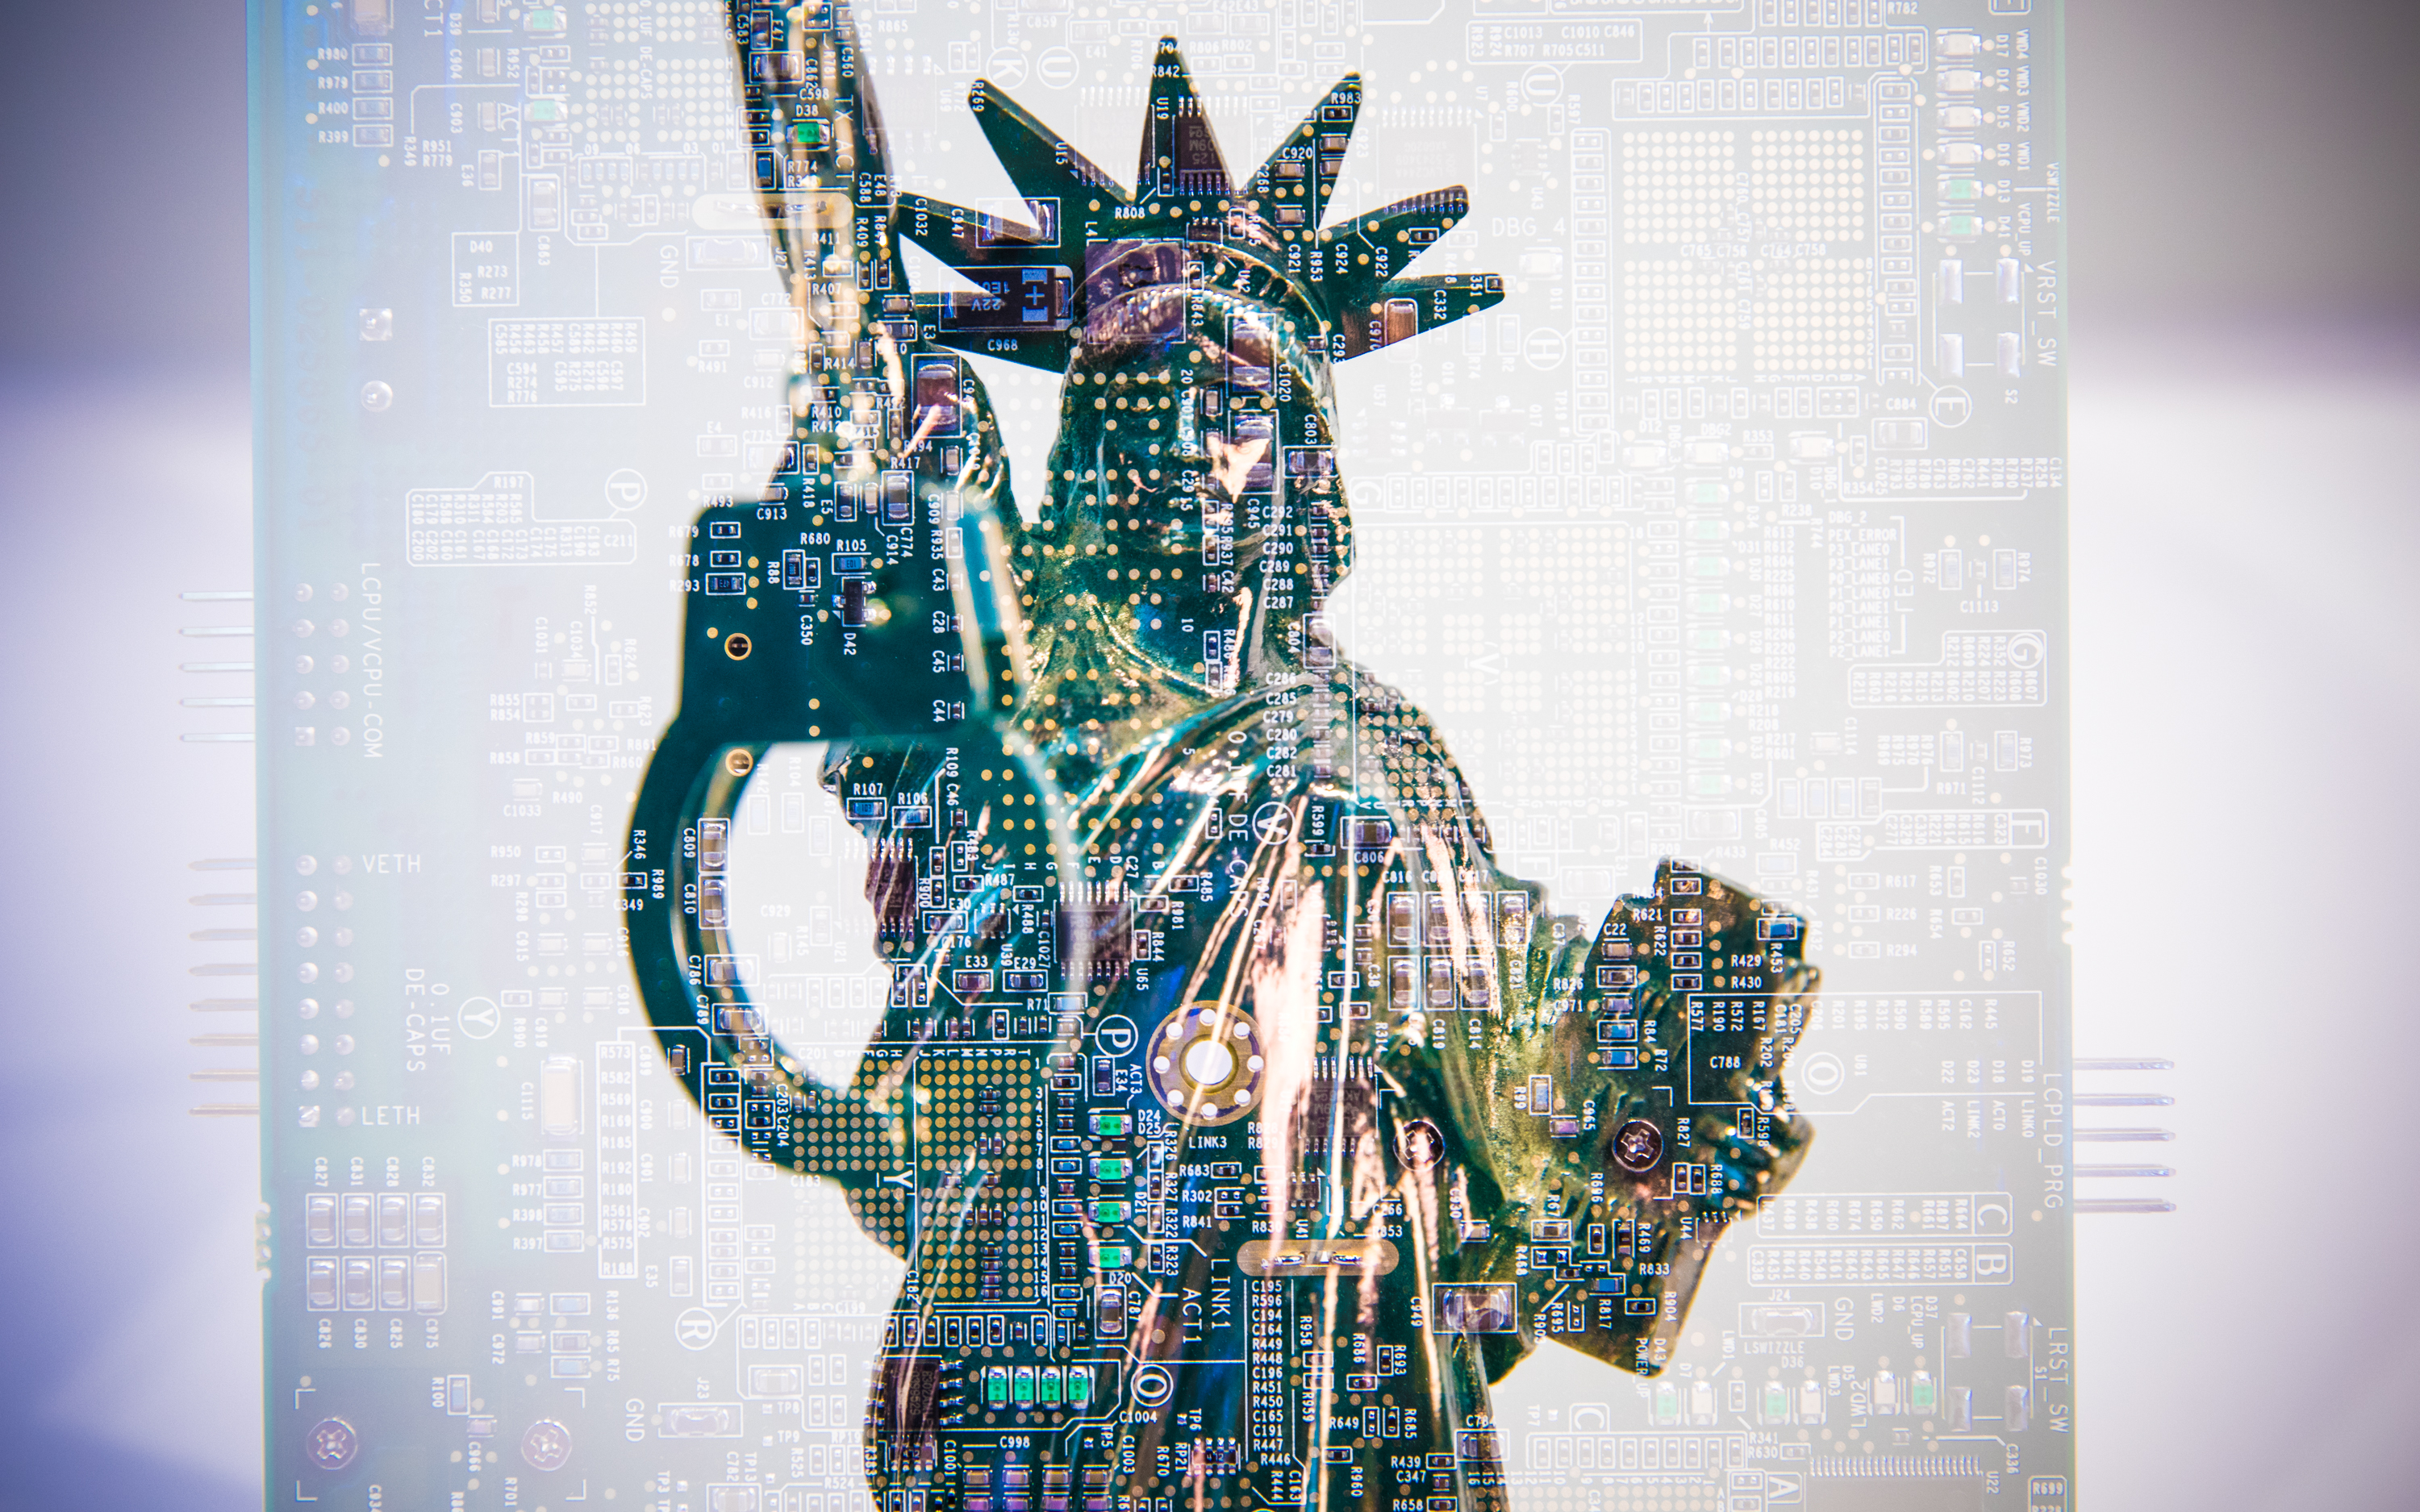 hacking-security-hackers-federal-liberty-computers-2.jpg